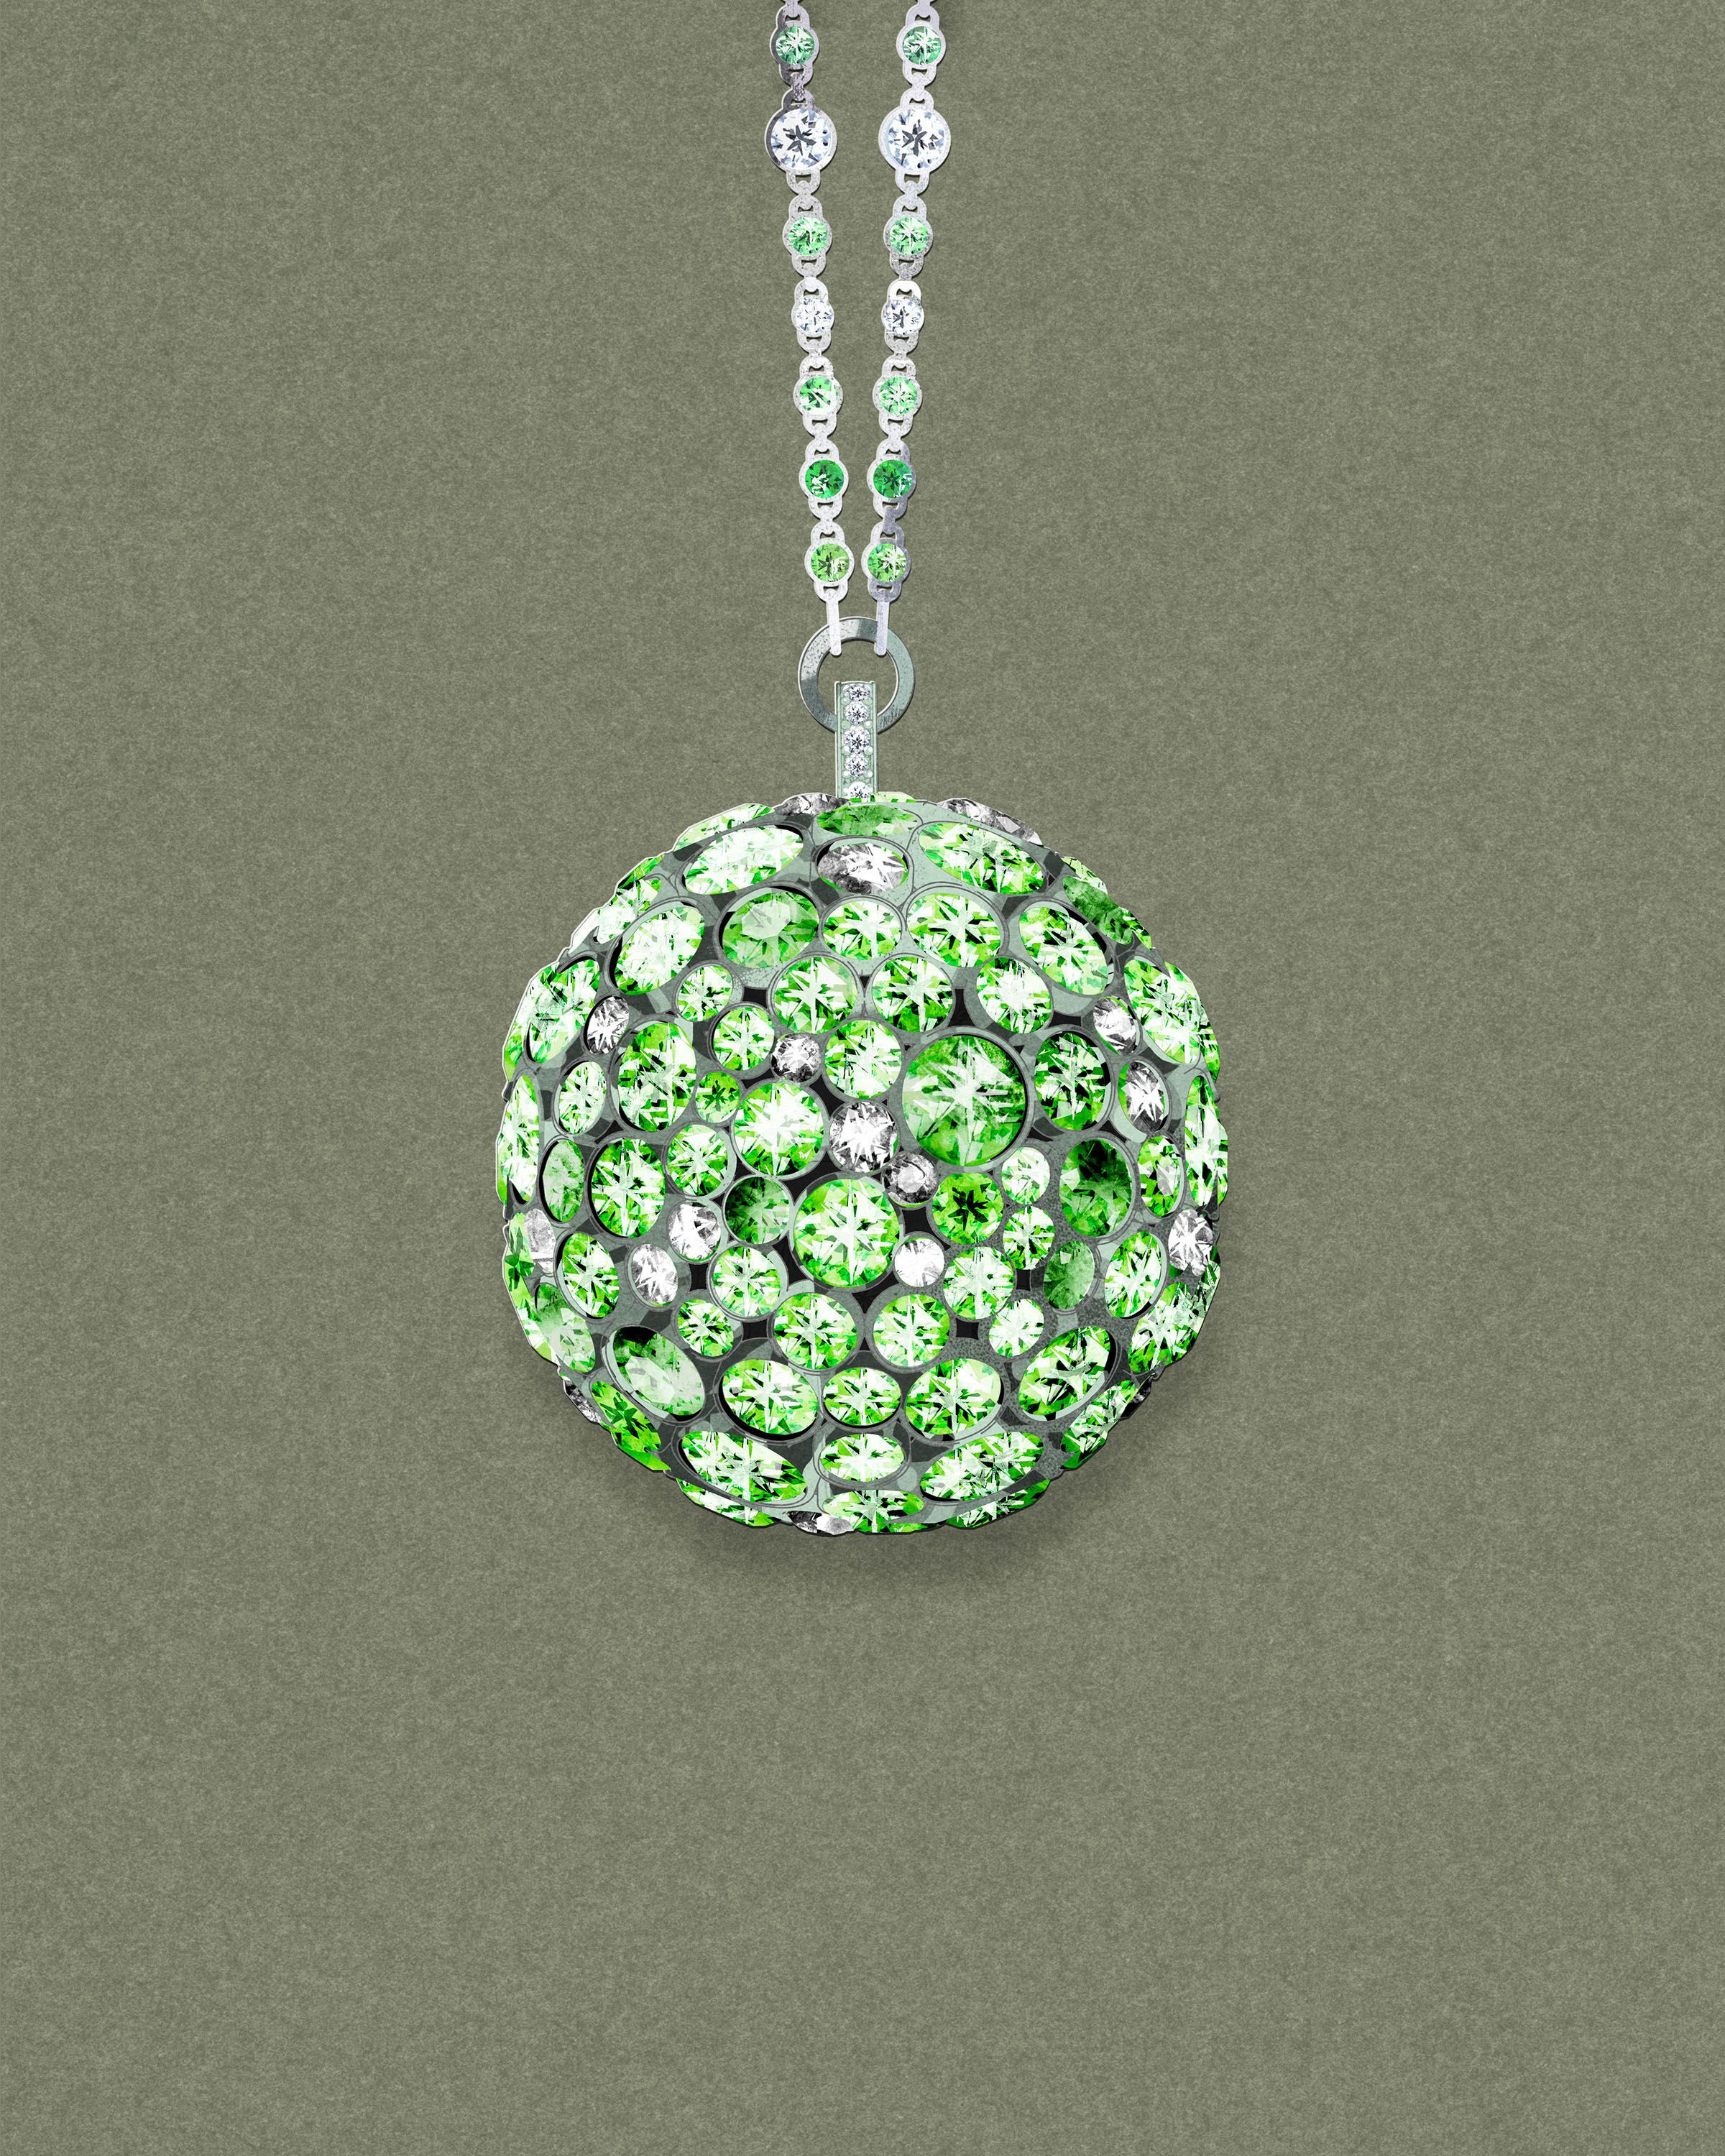 An art sketch of Tiffany's Masterpieces jewellery collection prism pendant in platinum, set with tsavorites and diamonds (POA). See more: http://www.thejewelleryeditor.com/jewellery/tiffany-masterpieces-high-jewellery-at-its-most-wearable/ #jewelry #green